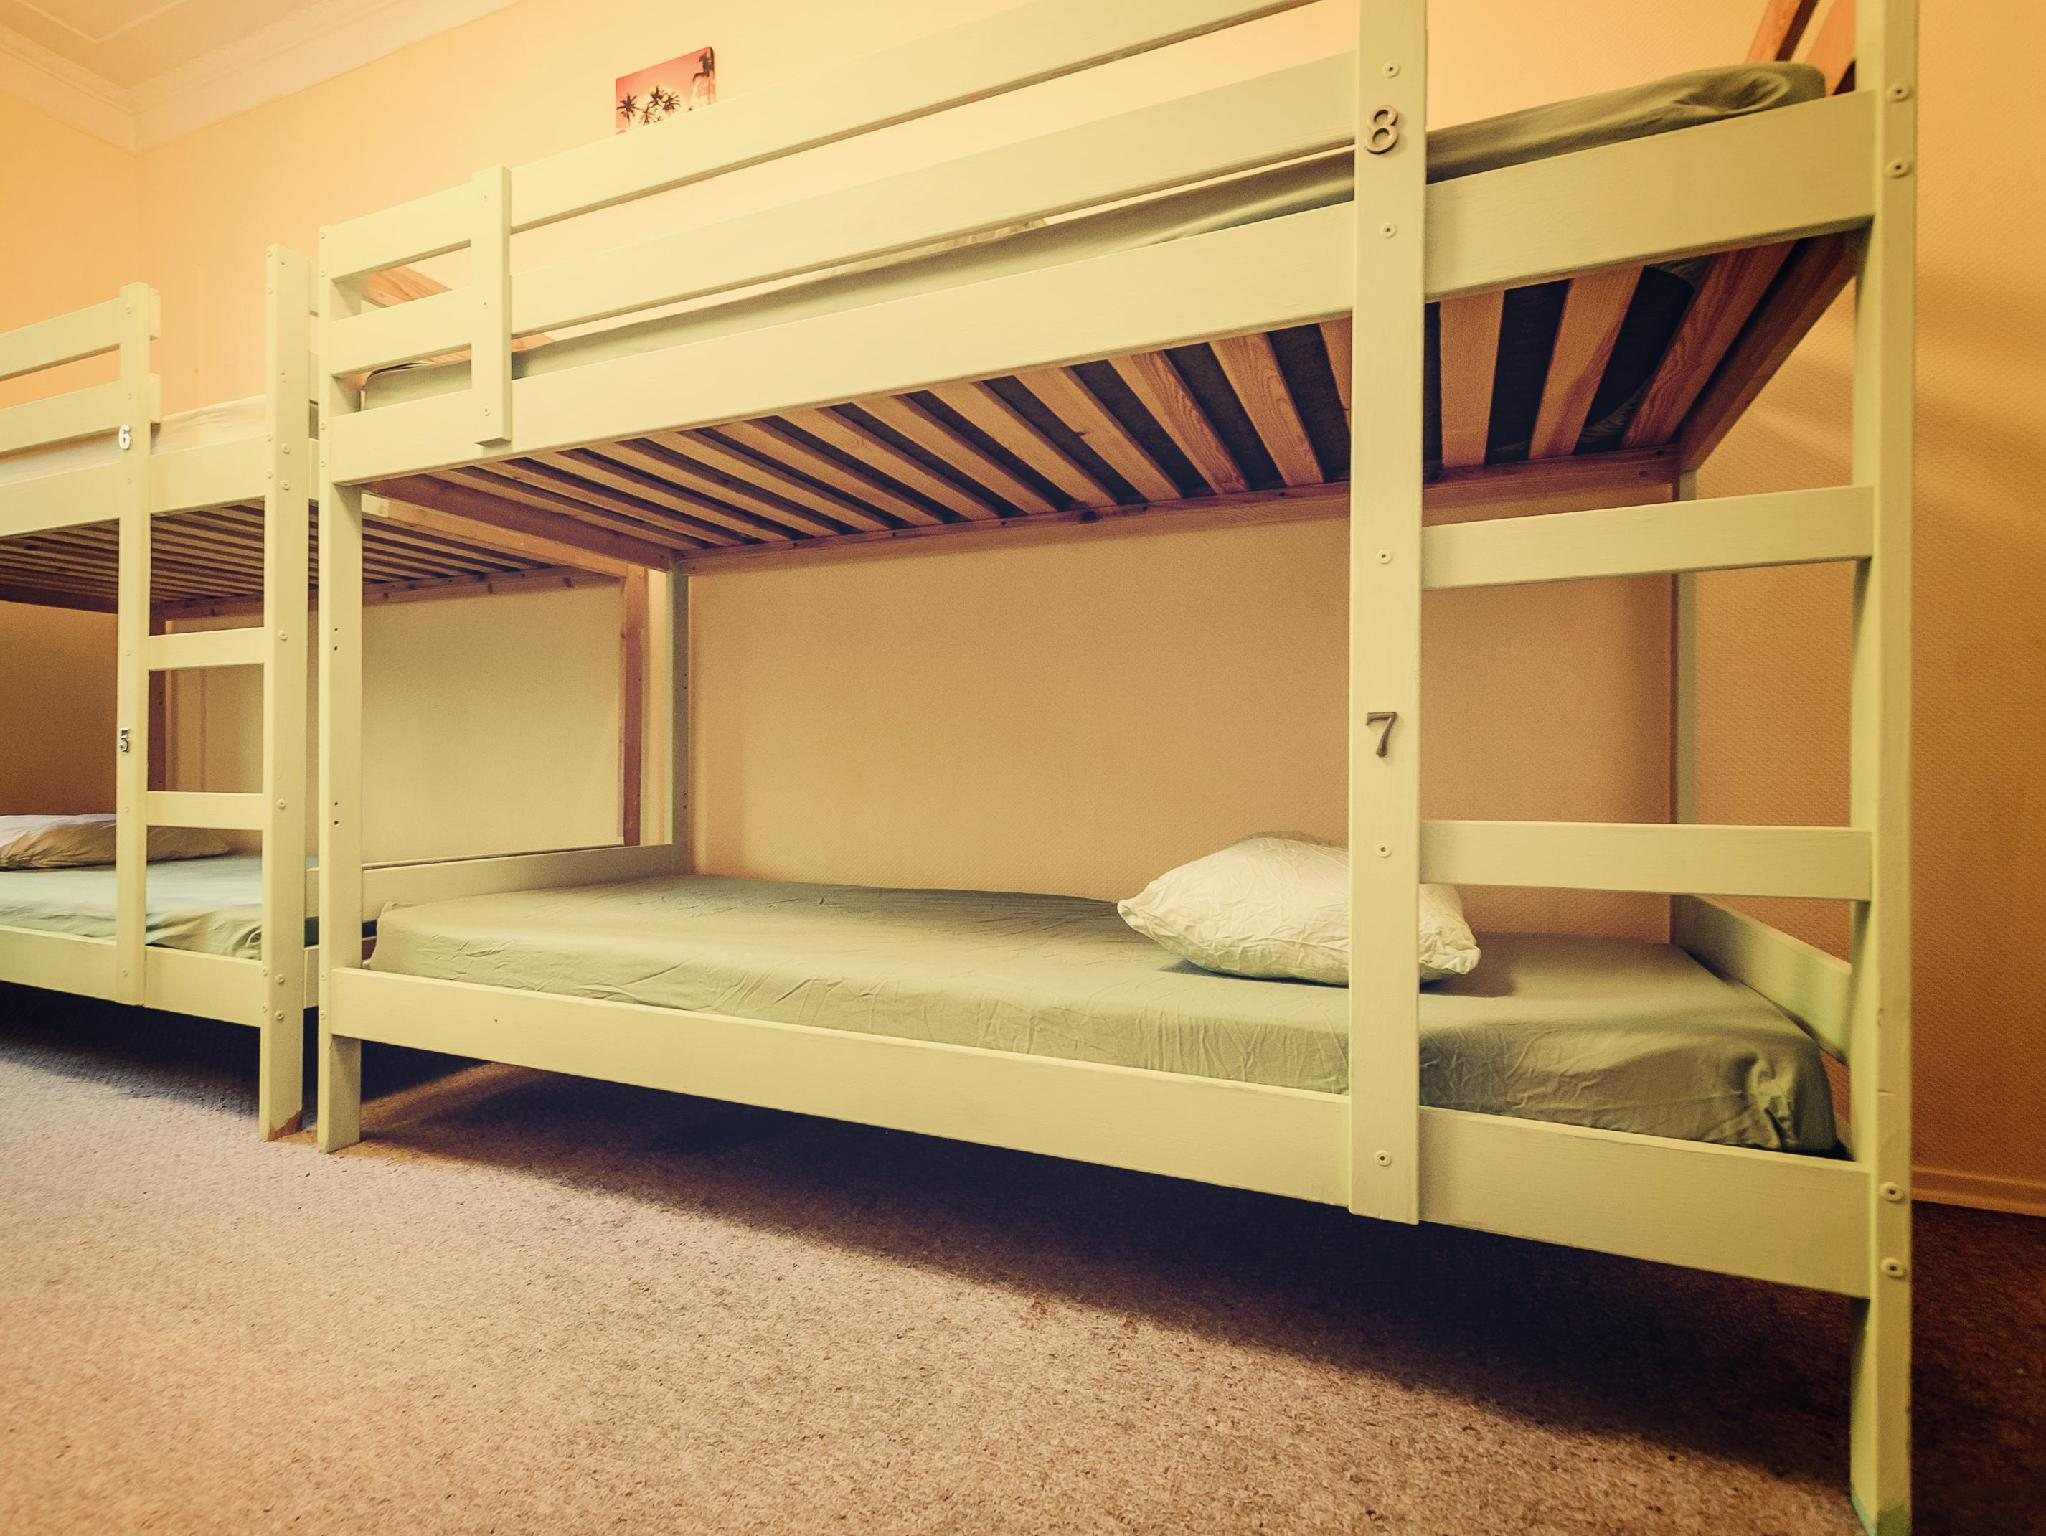 TNT Hostel Moscow Reviews